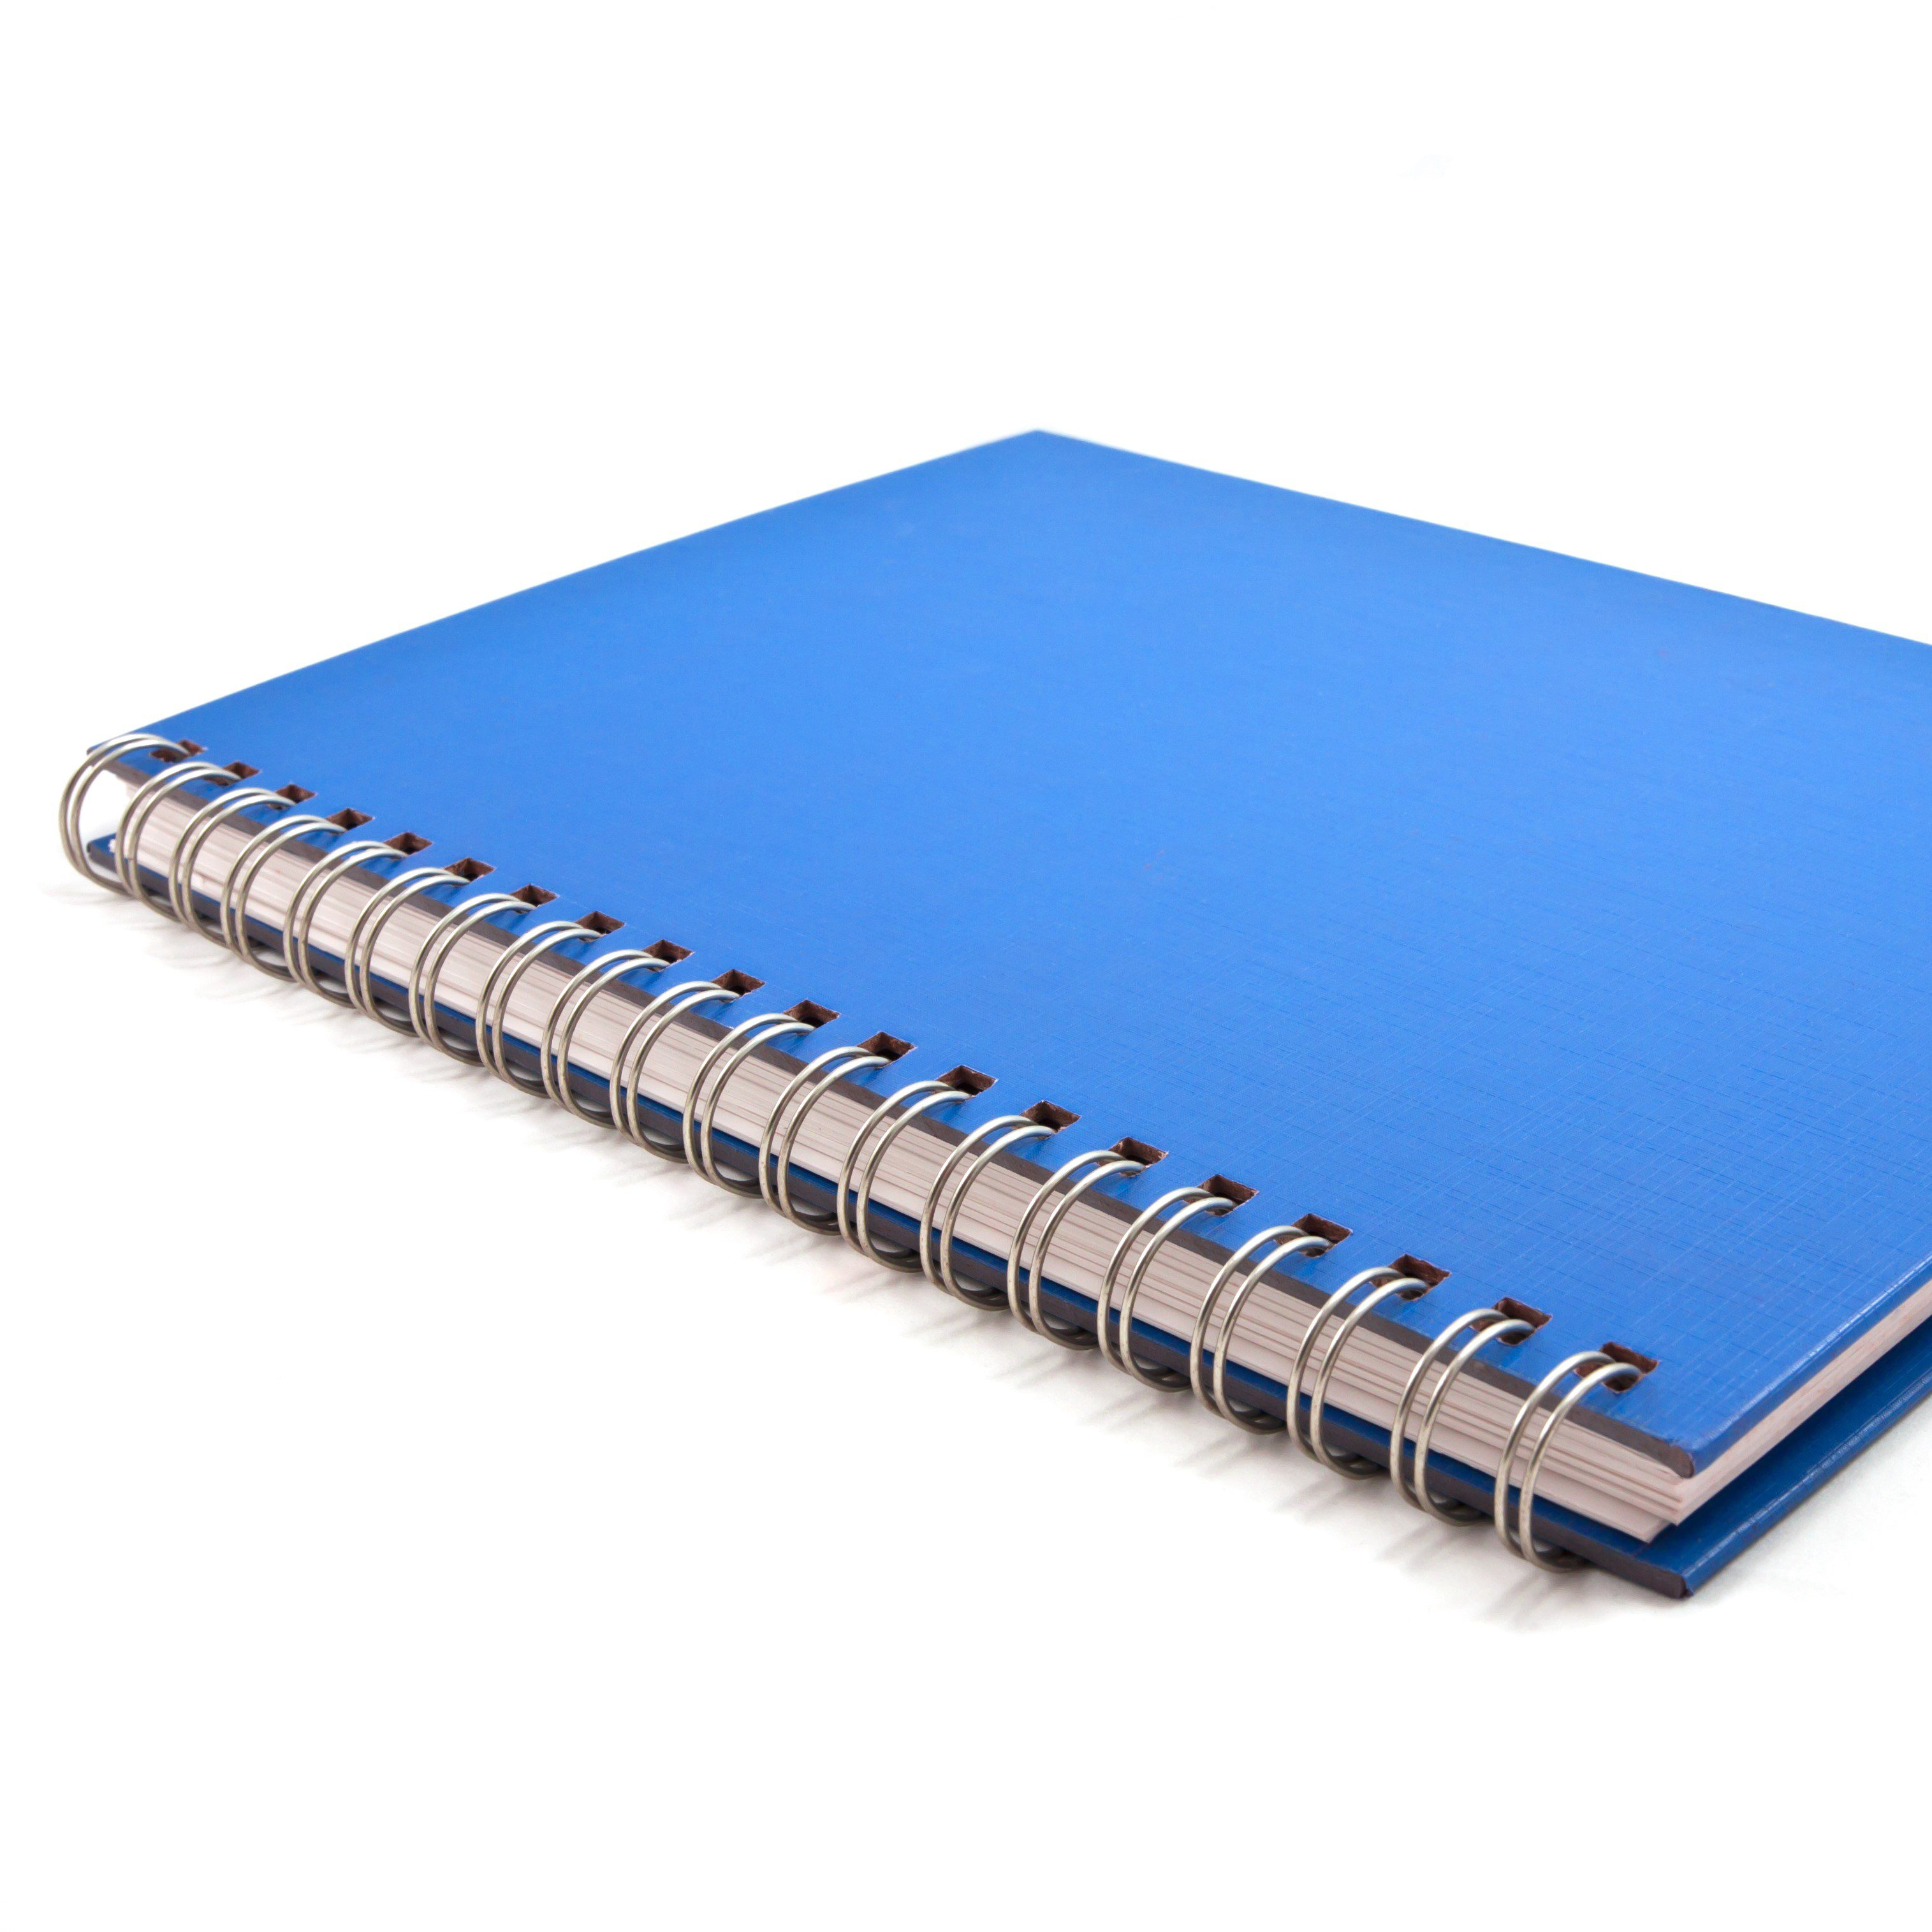 Blue,Cover,Of,Notebook,Isolated,On,White,Background